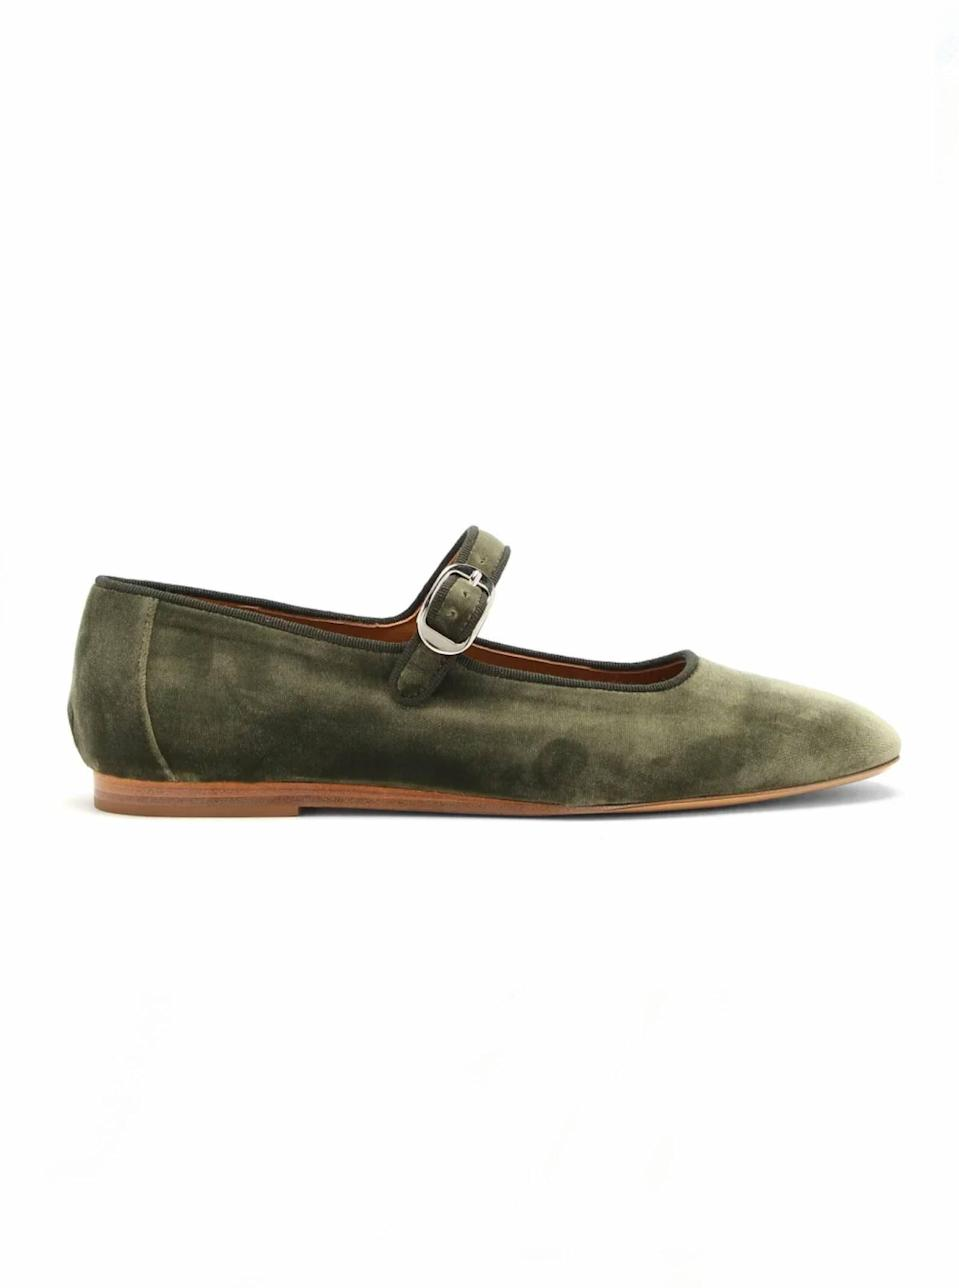 """$440, Matches Fashion. <a href=""""https://www.matchesfashion.com/us/products/Le-Monde-Beryl-Velvet-Mary-Jane-flats-1377901"""" rel=""""nofollow noopener"""" target=""""_blank"""" data-ylk=""""slk:Get it now!"""" class=""""link rapid-noclick-resp"""">Get it now!</a>"""